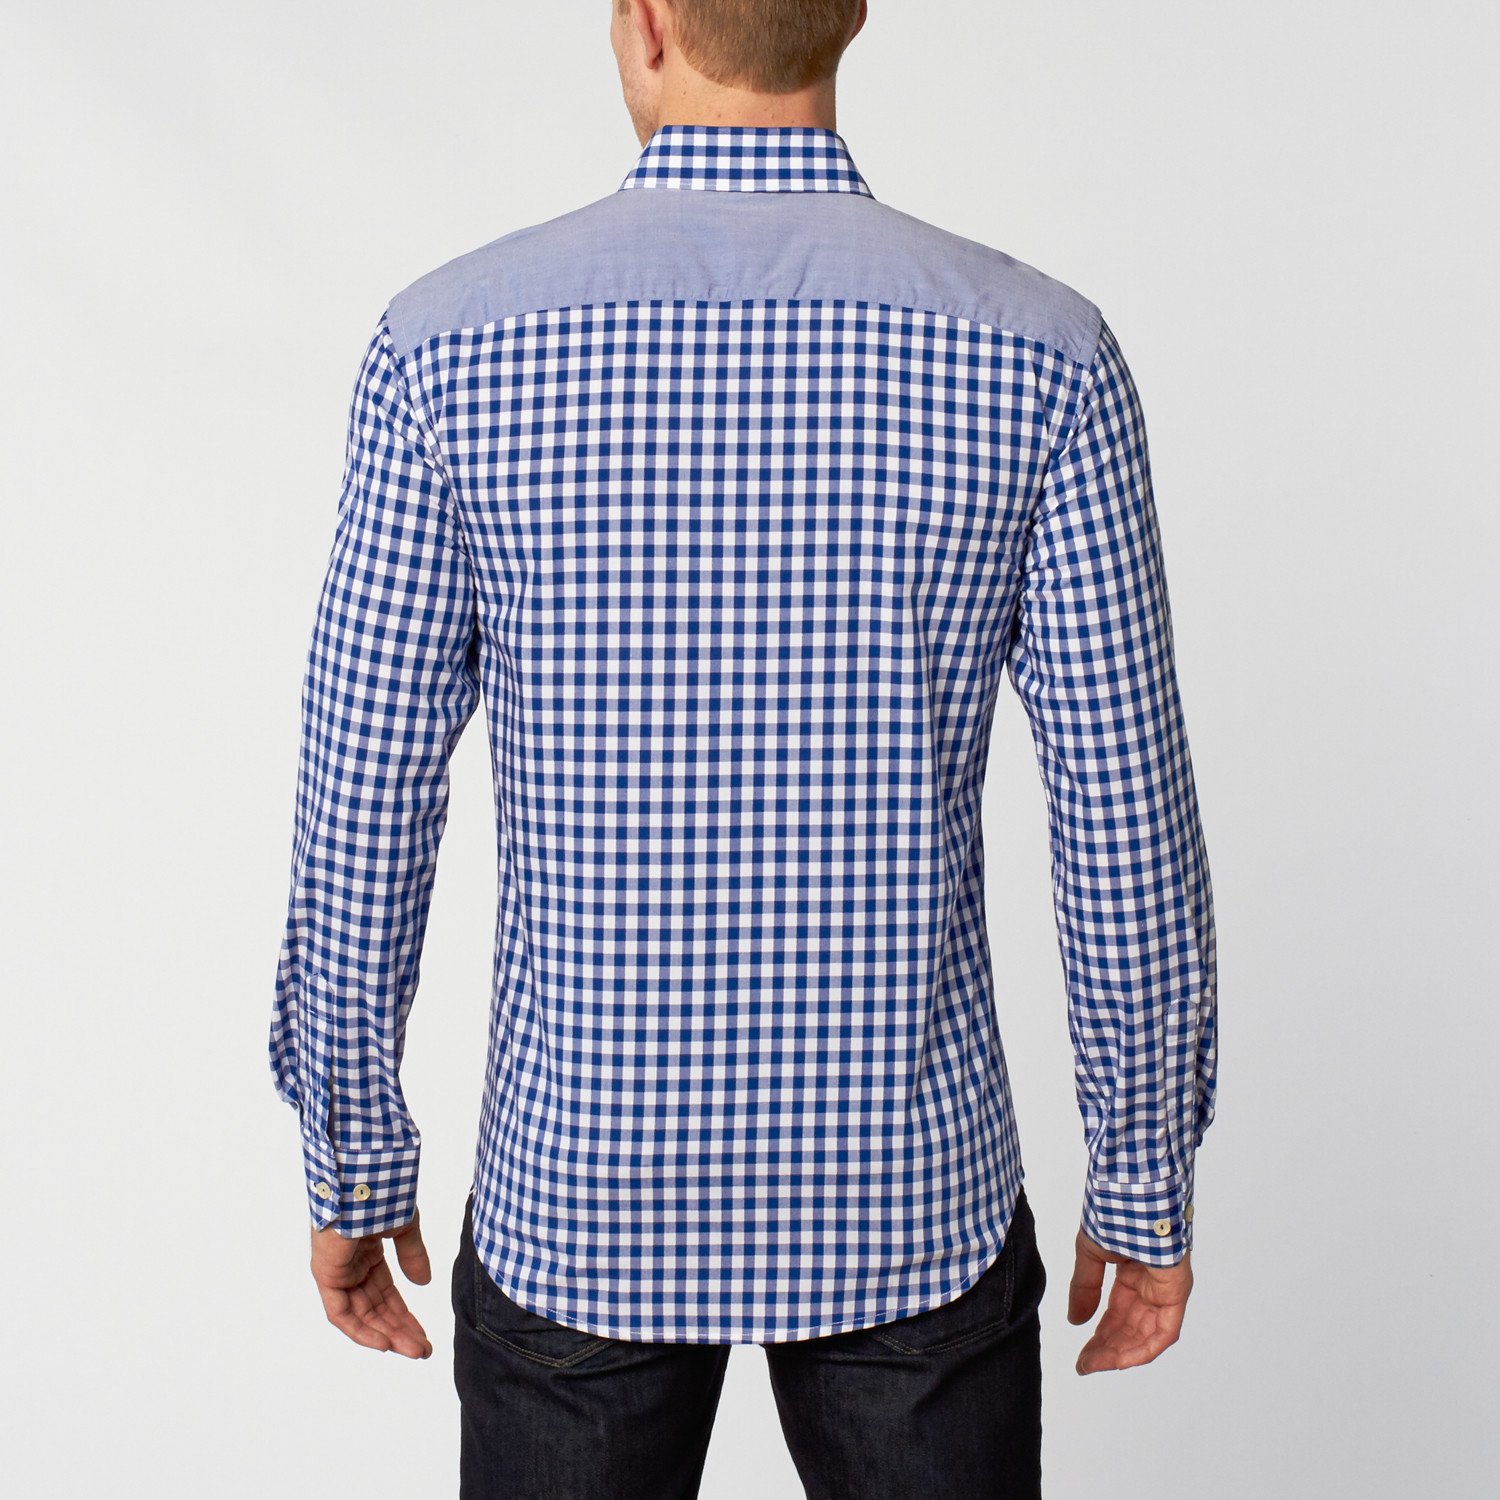 Dress shirt blue white s ethan williams touch for Blue white dress shirt